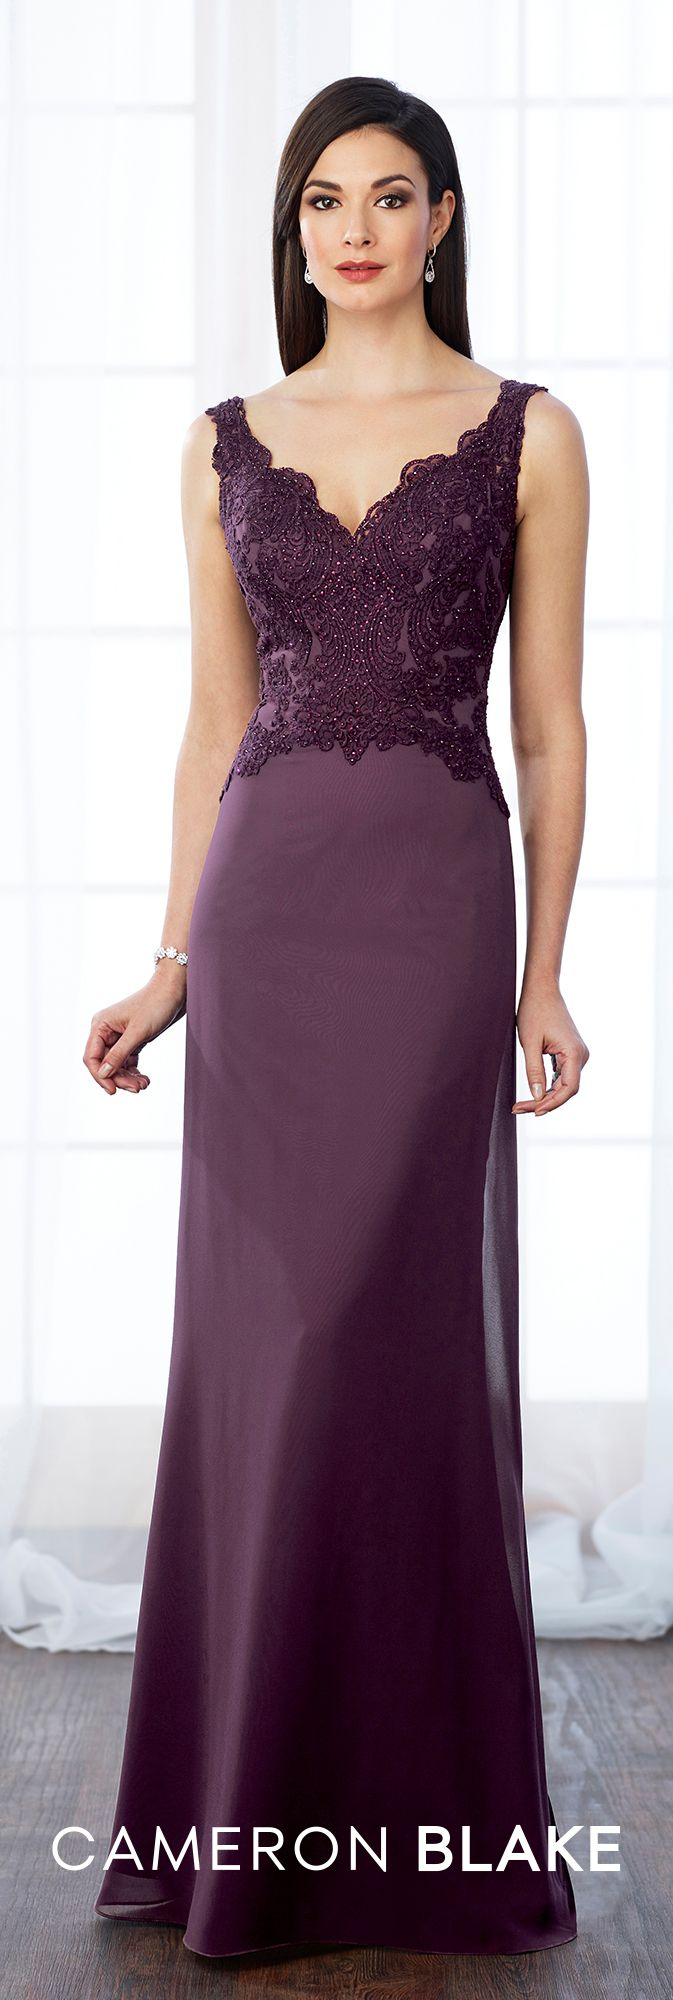 Formal Evening Gowns by Mon Cheri - Fall 2017 - Style No. 217650 - sleeveless dark purple evening dress with beaded lace bodice and optional beaded illusion lace three-quarter length sleeves